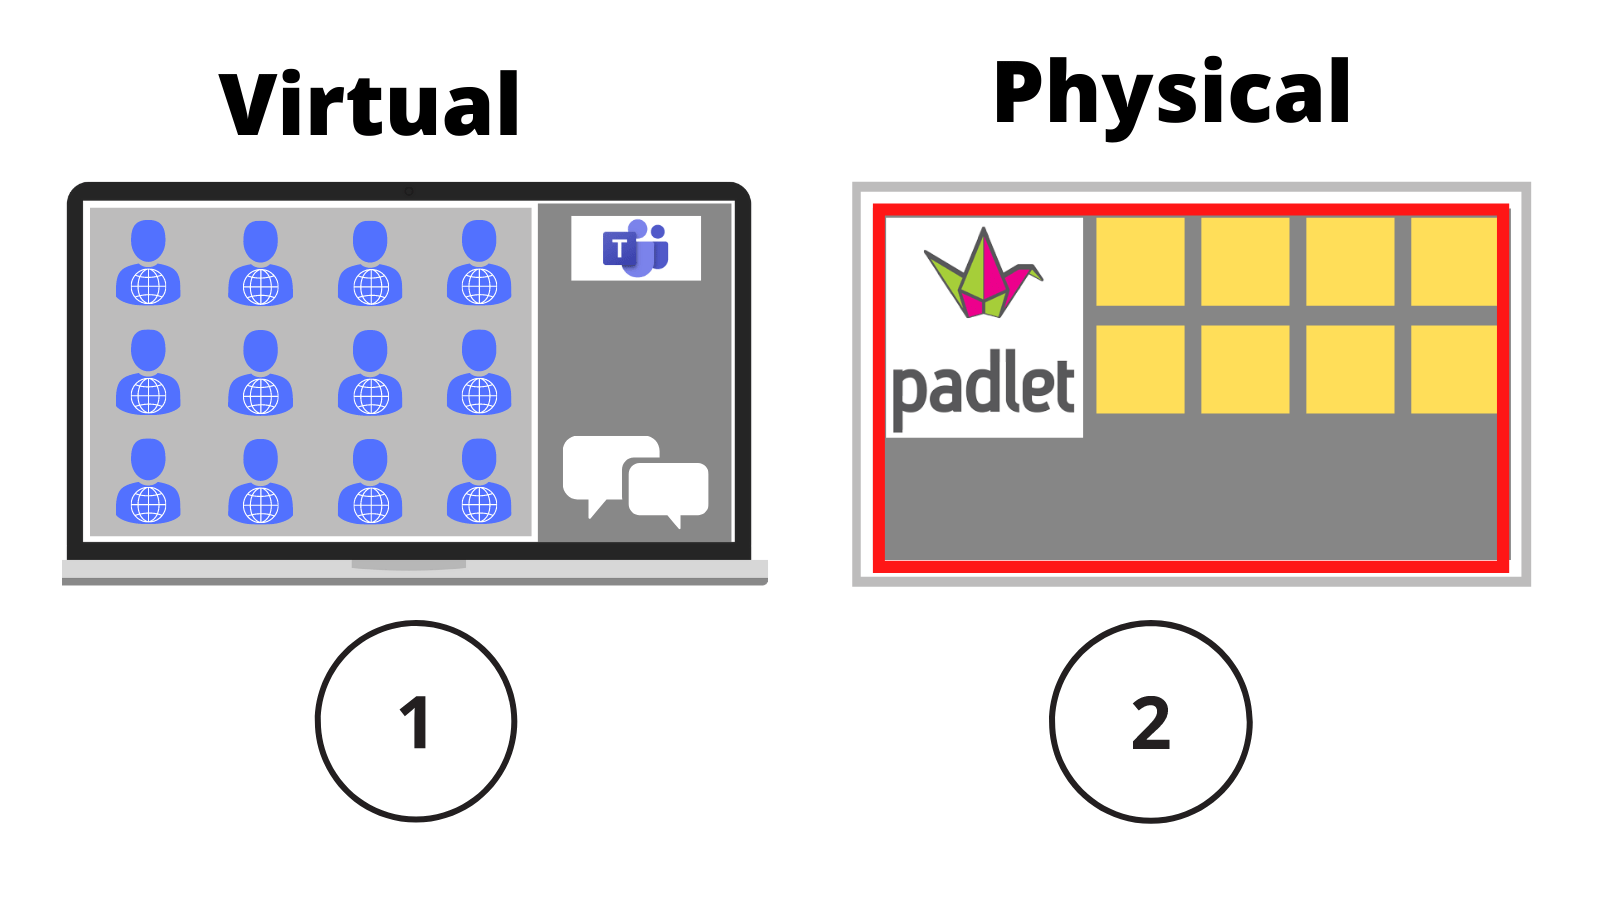 Two screens; one labelled '1, virtual' showing virtual participants the other labelled '2, physical' showing a padlet screen